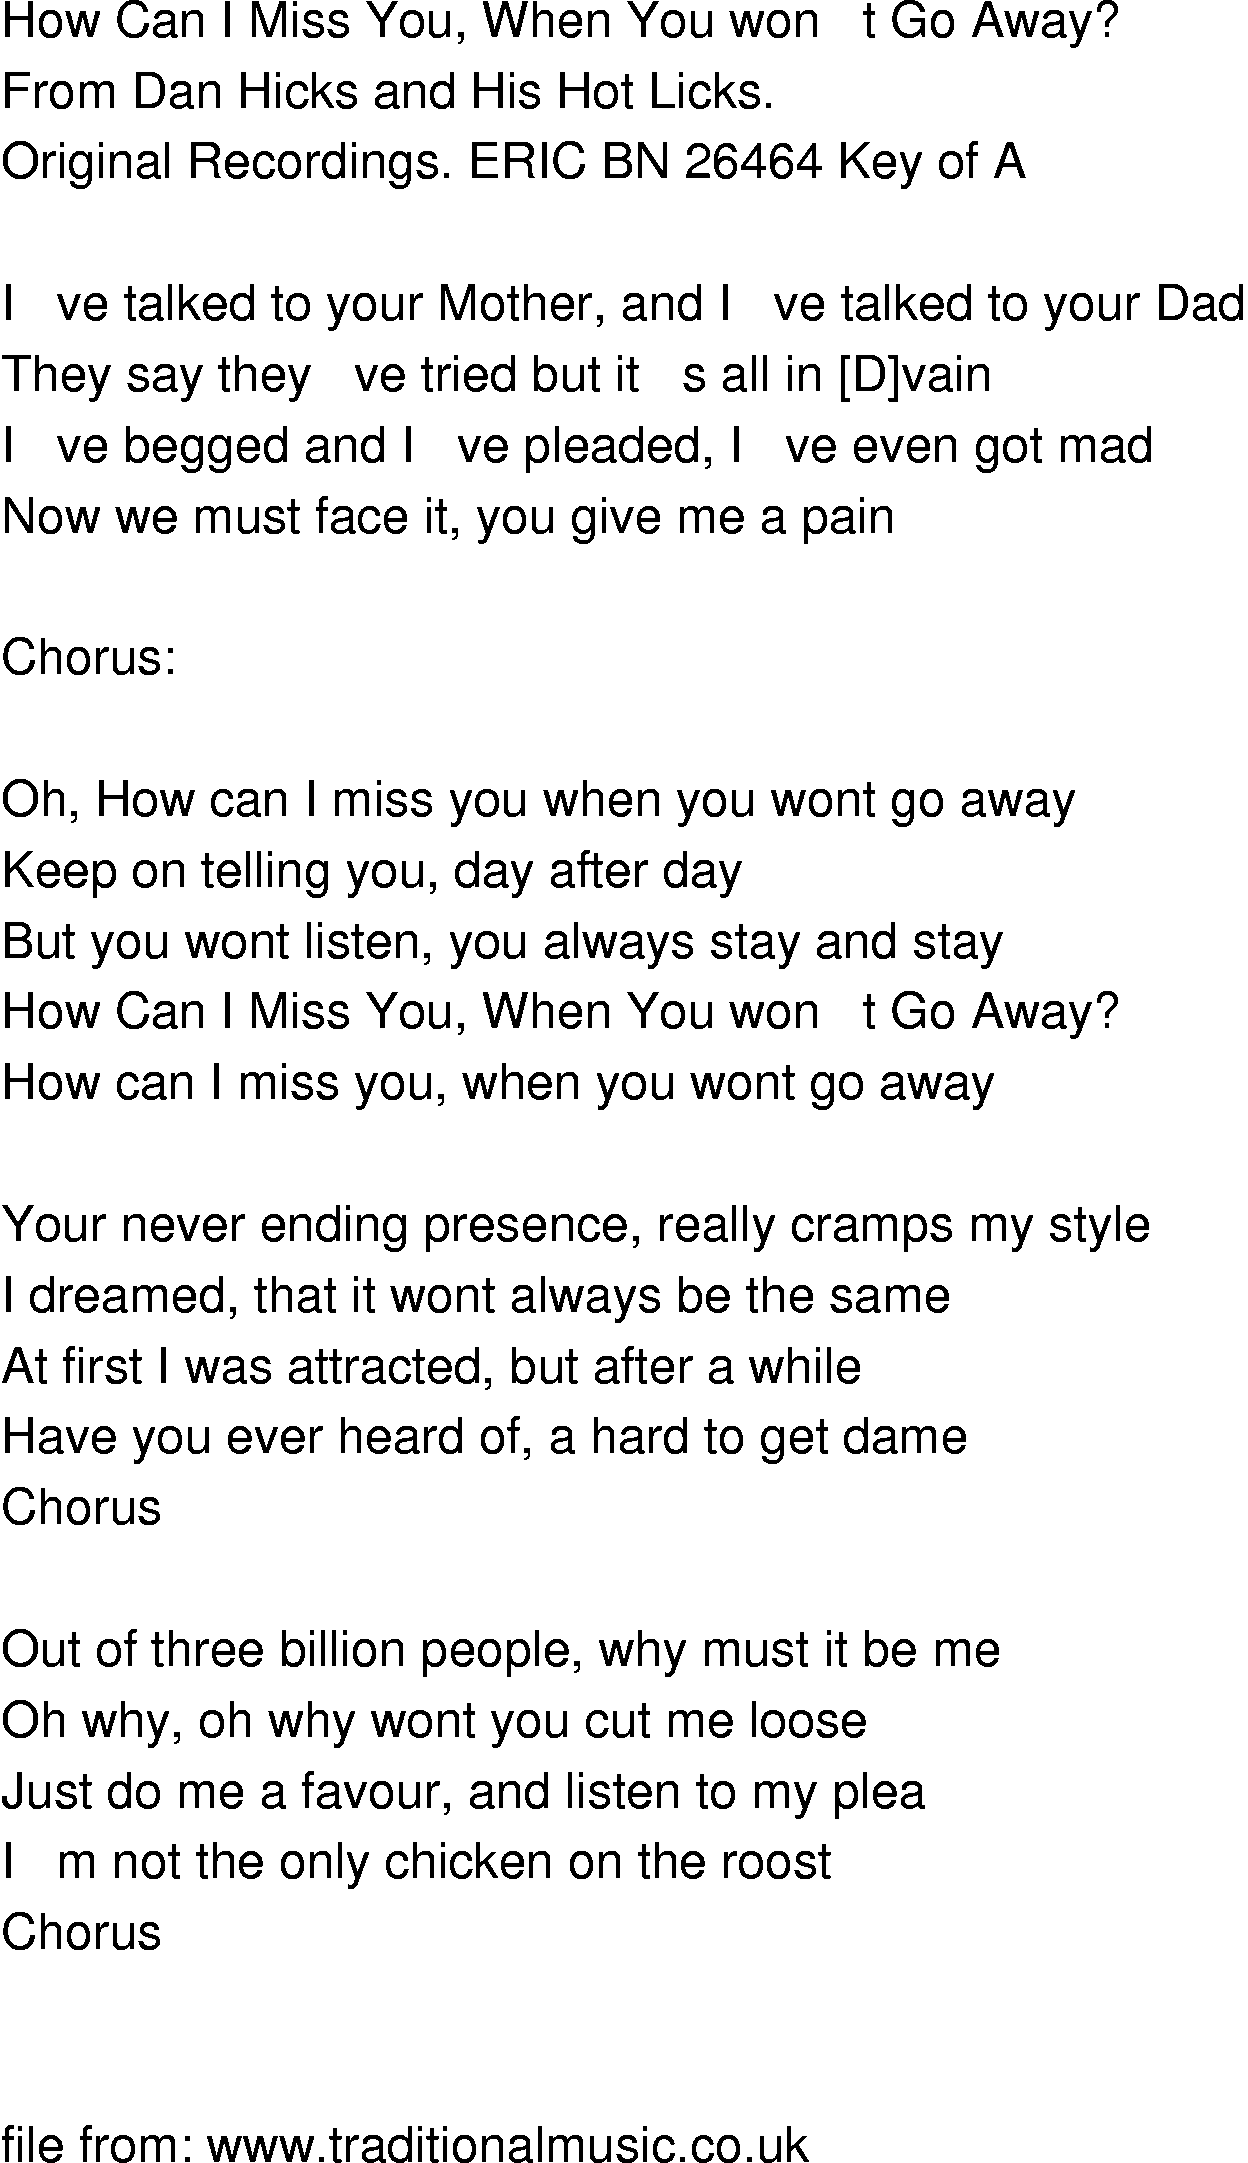 Old Time Song Lyrics How Can I Miss You When You Wont Go Away